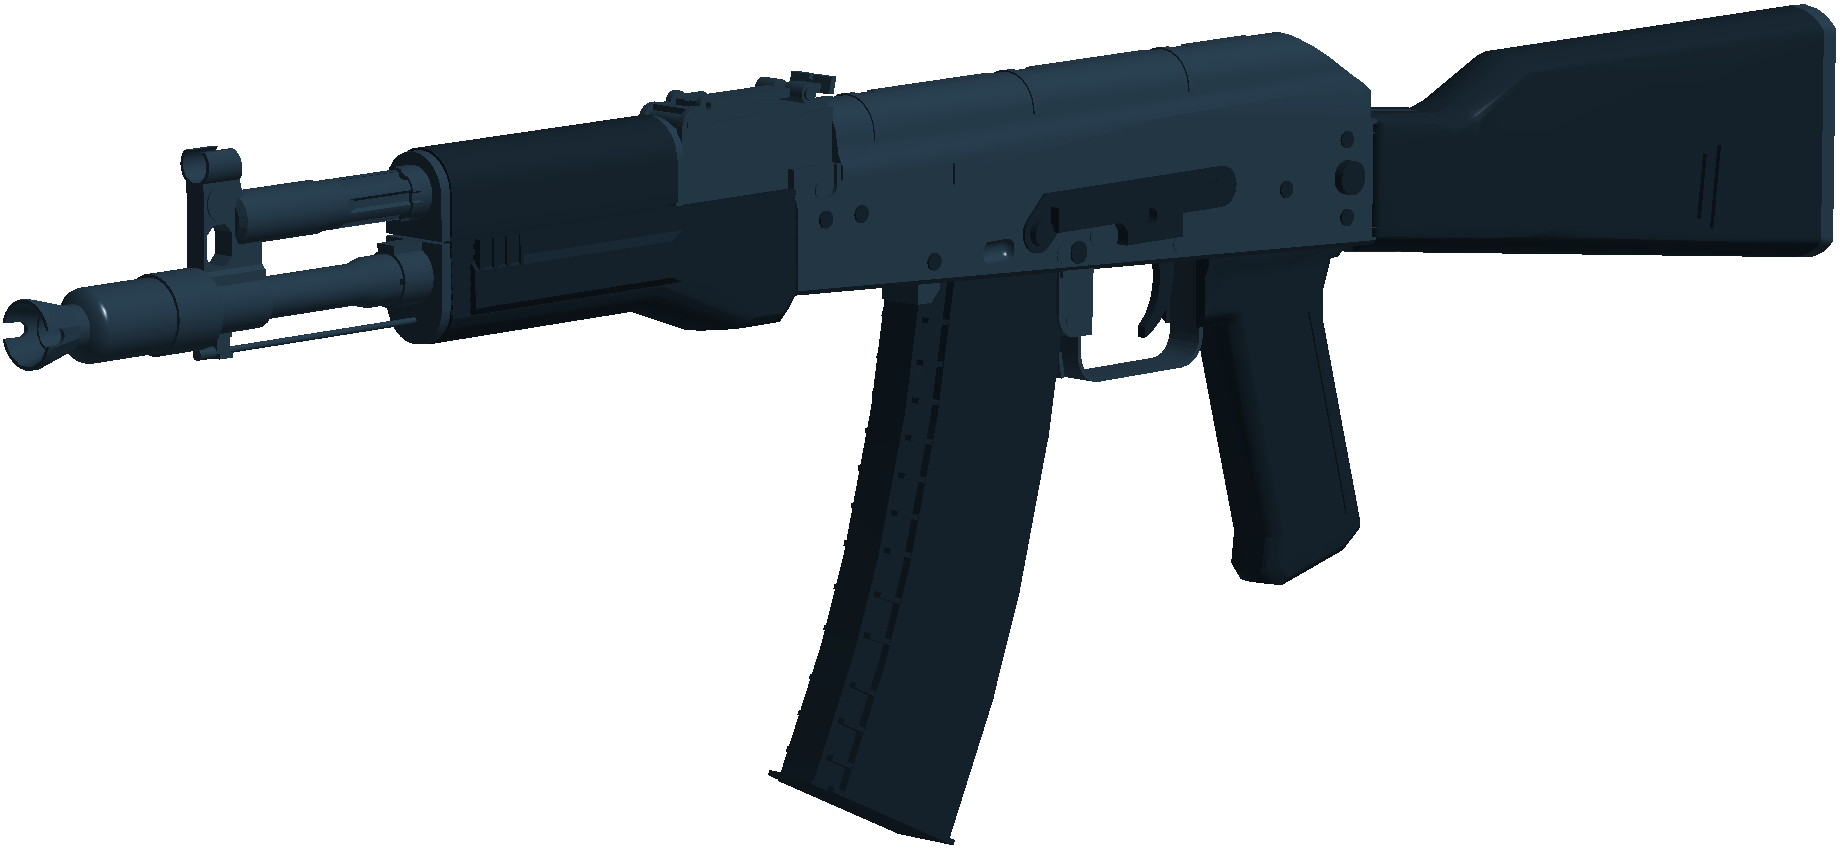 Ak 105 ak105 | phantom forces wiki | fandom poweredwikia